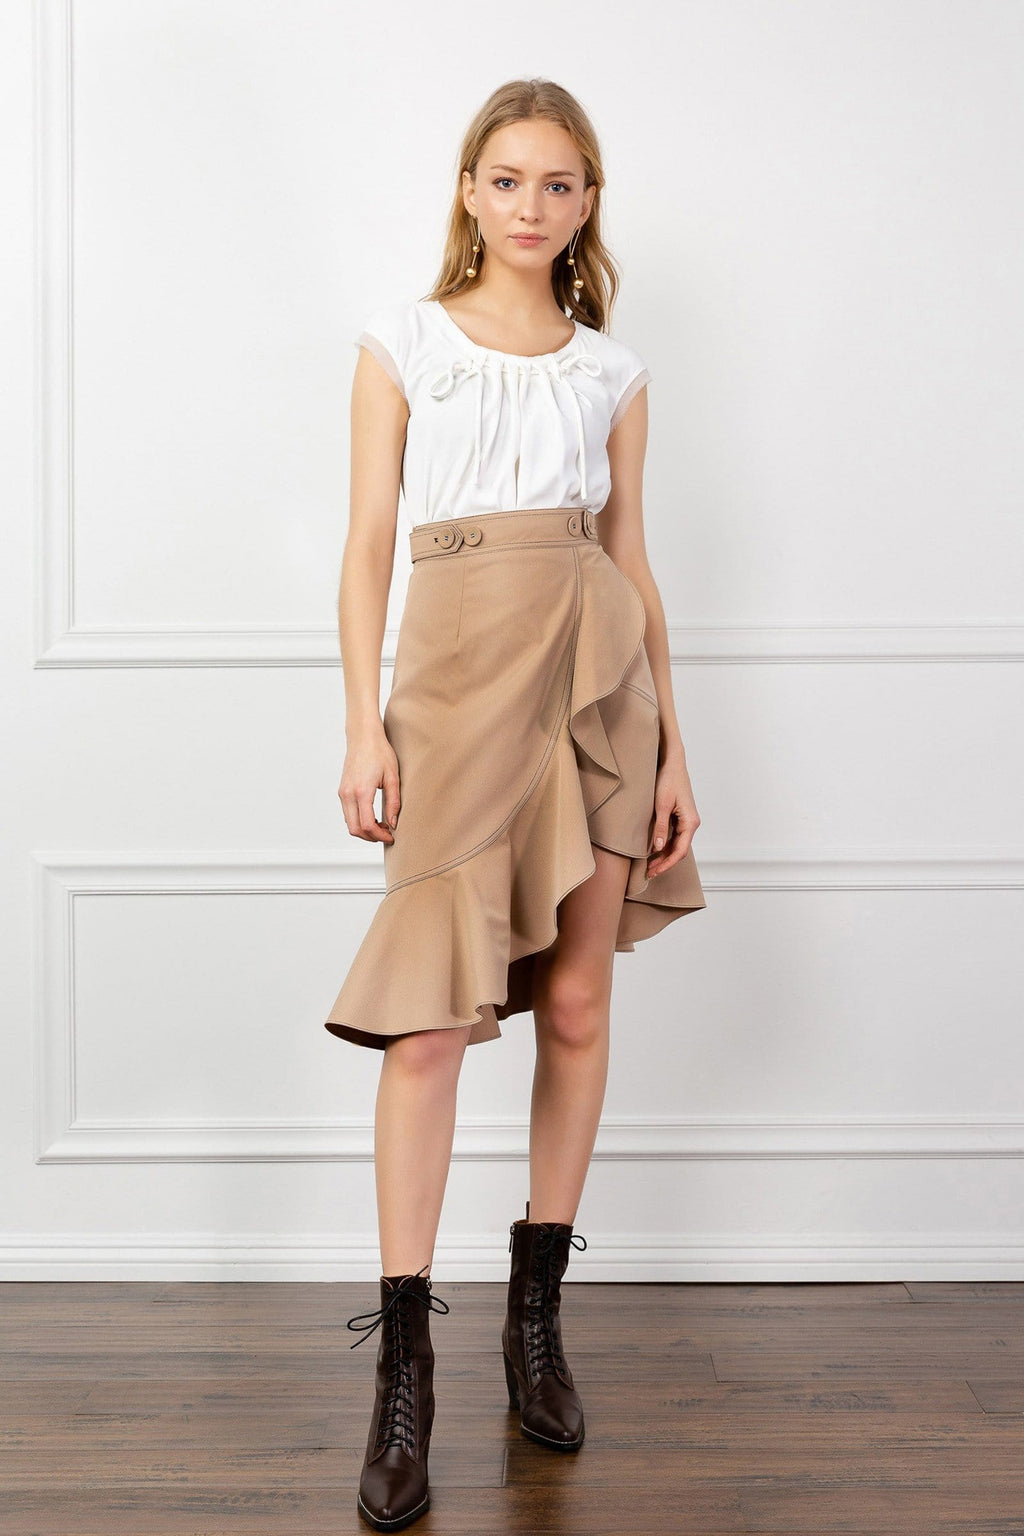 https://cdn.shopify.com/s/files/1/0015/5638/1732/files/Montana_Midi_Skirt-VD.mp4?21551